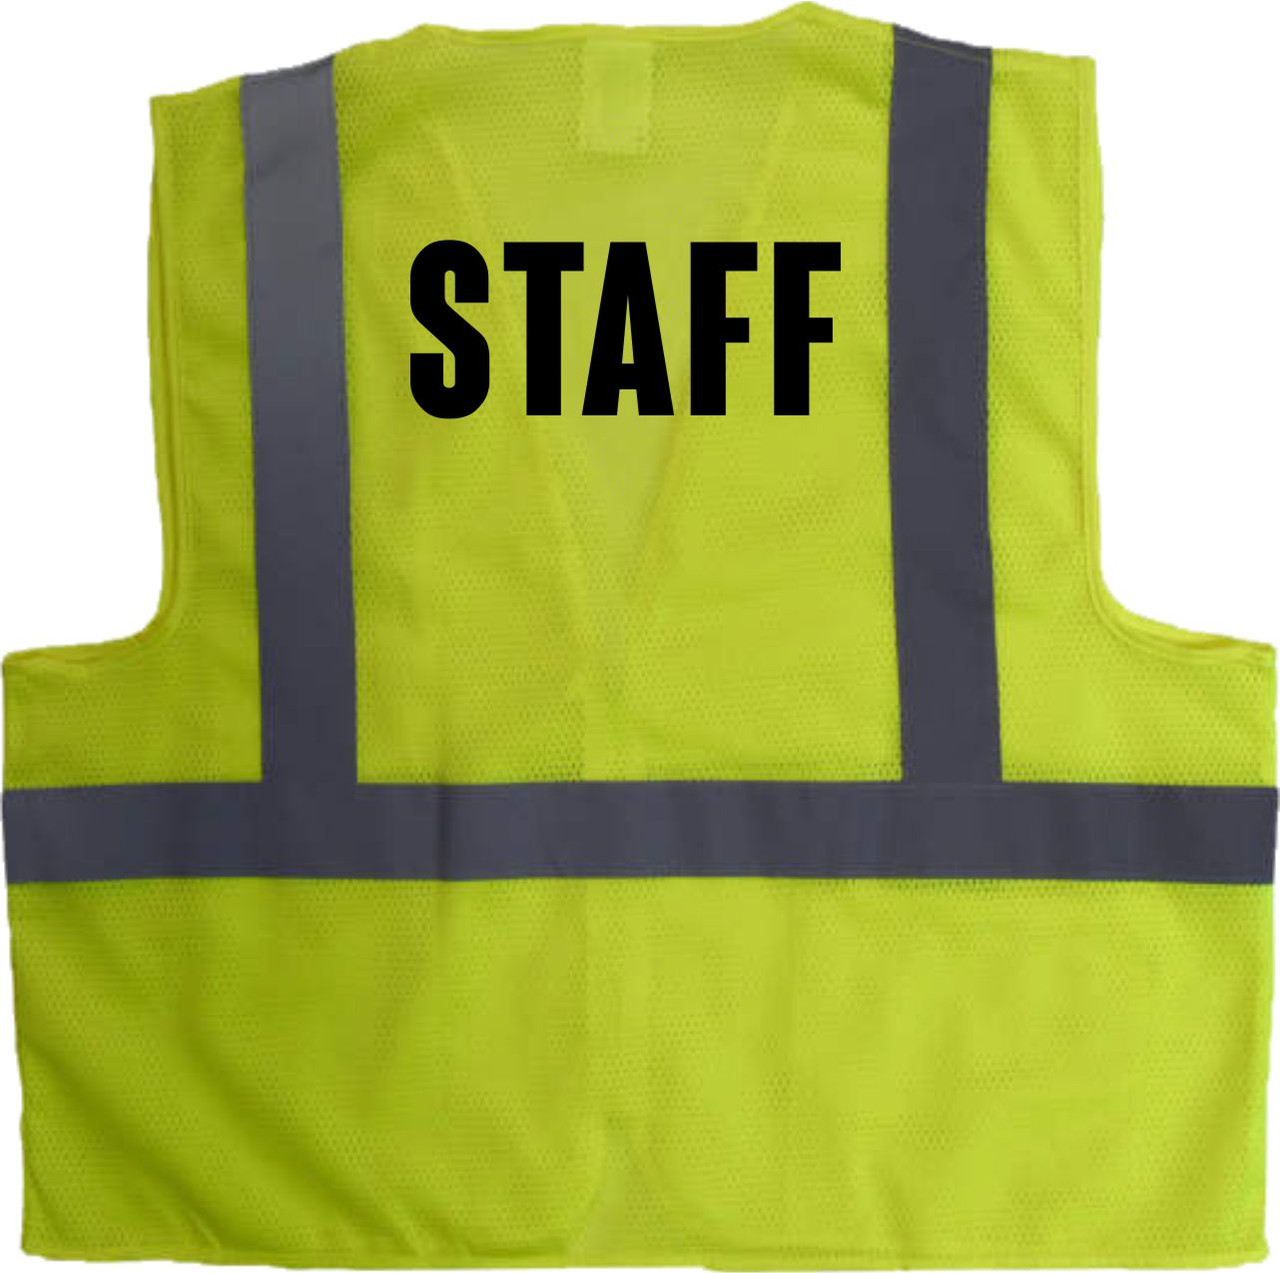 Great way to give added visibility to help your STAFF stand out.  This class 2 Safety Vest has STAFF printed boldly on the front and the back.